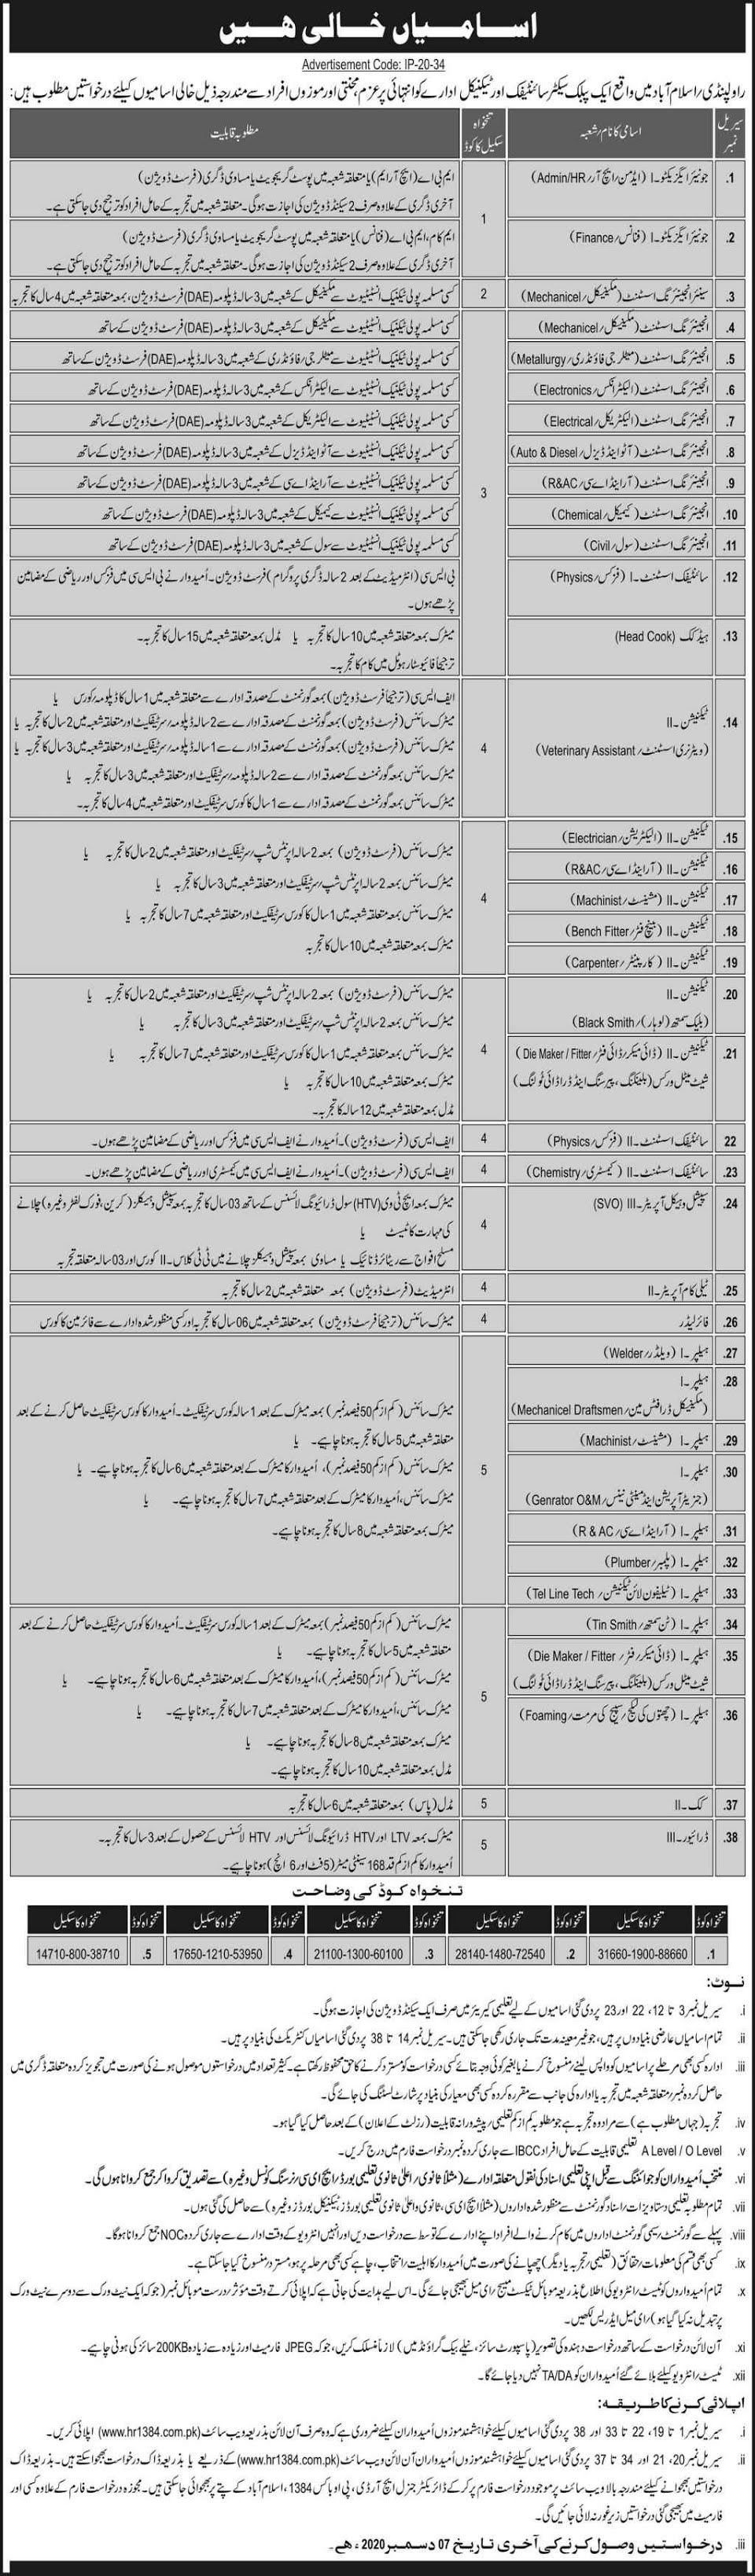 Public Sector Scientific & Technical Department Jobs 2020 Latest For Scientific Assistant, Head Cook, Technical-II Veterinary Assistant and more